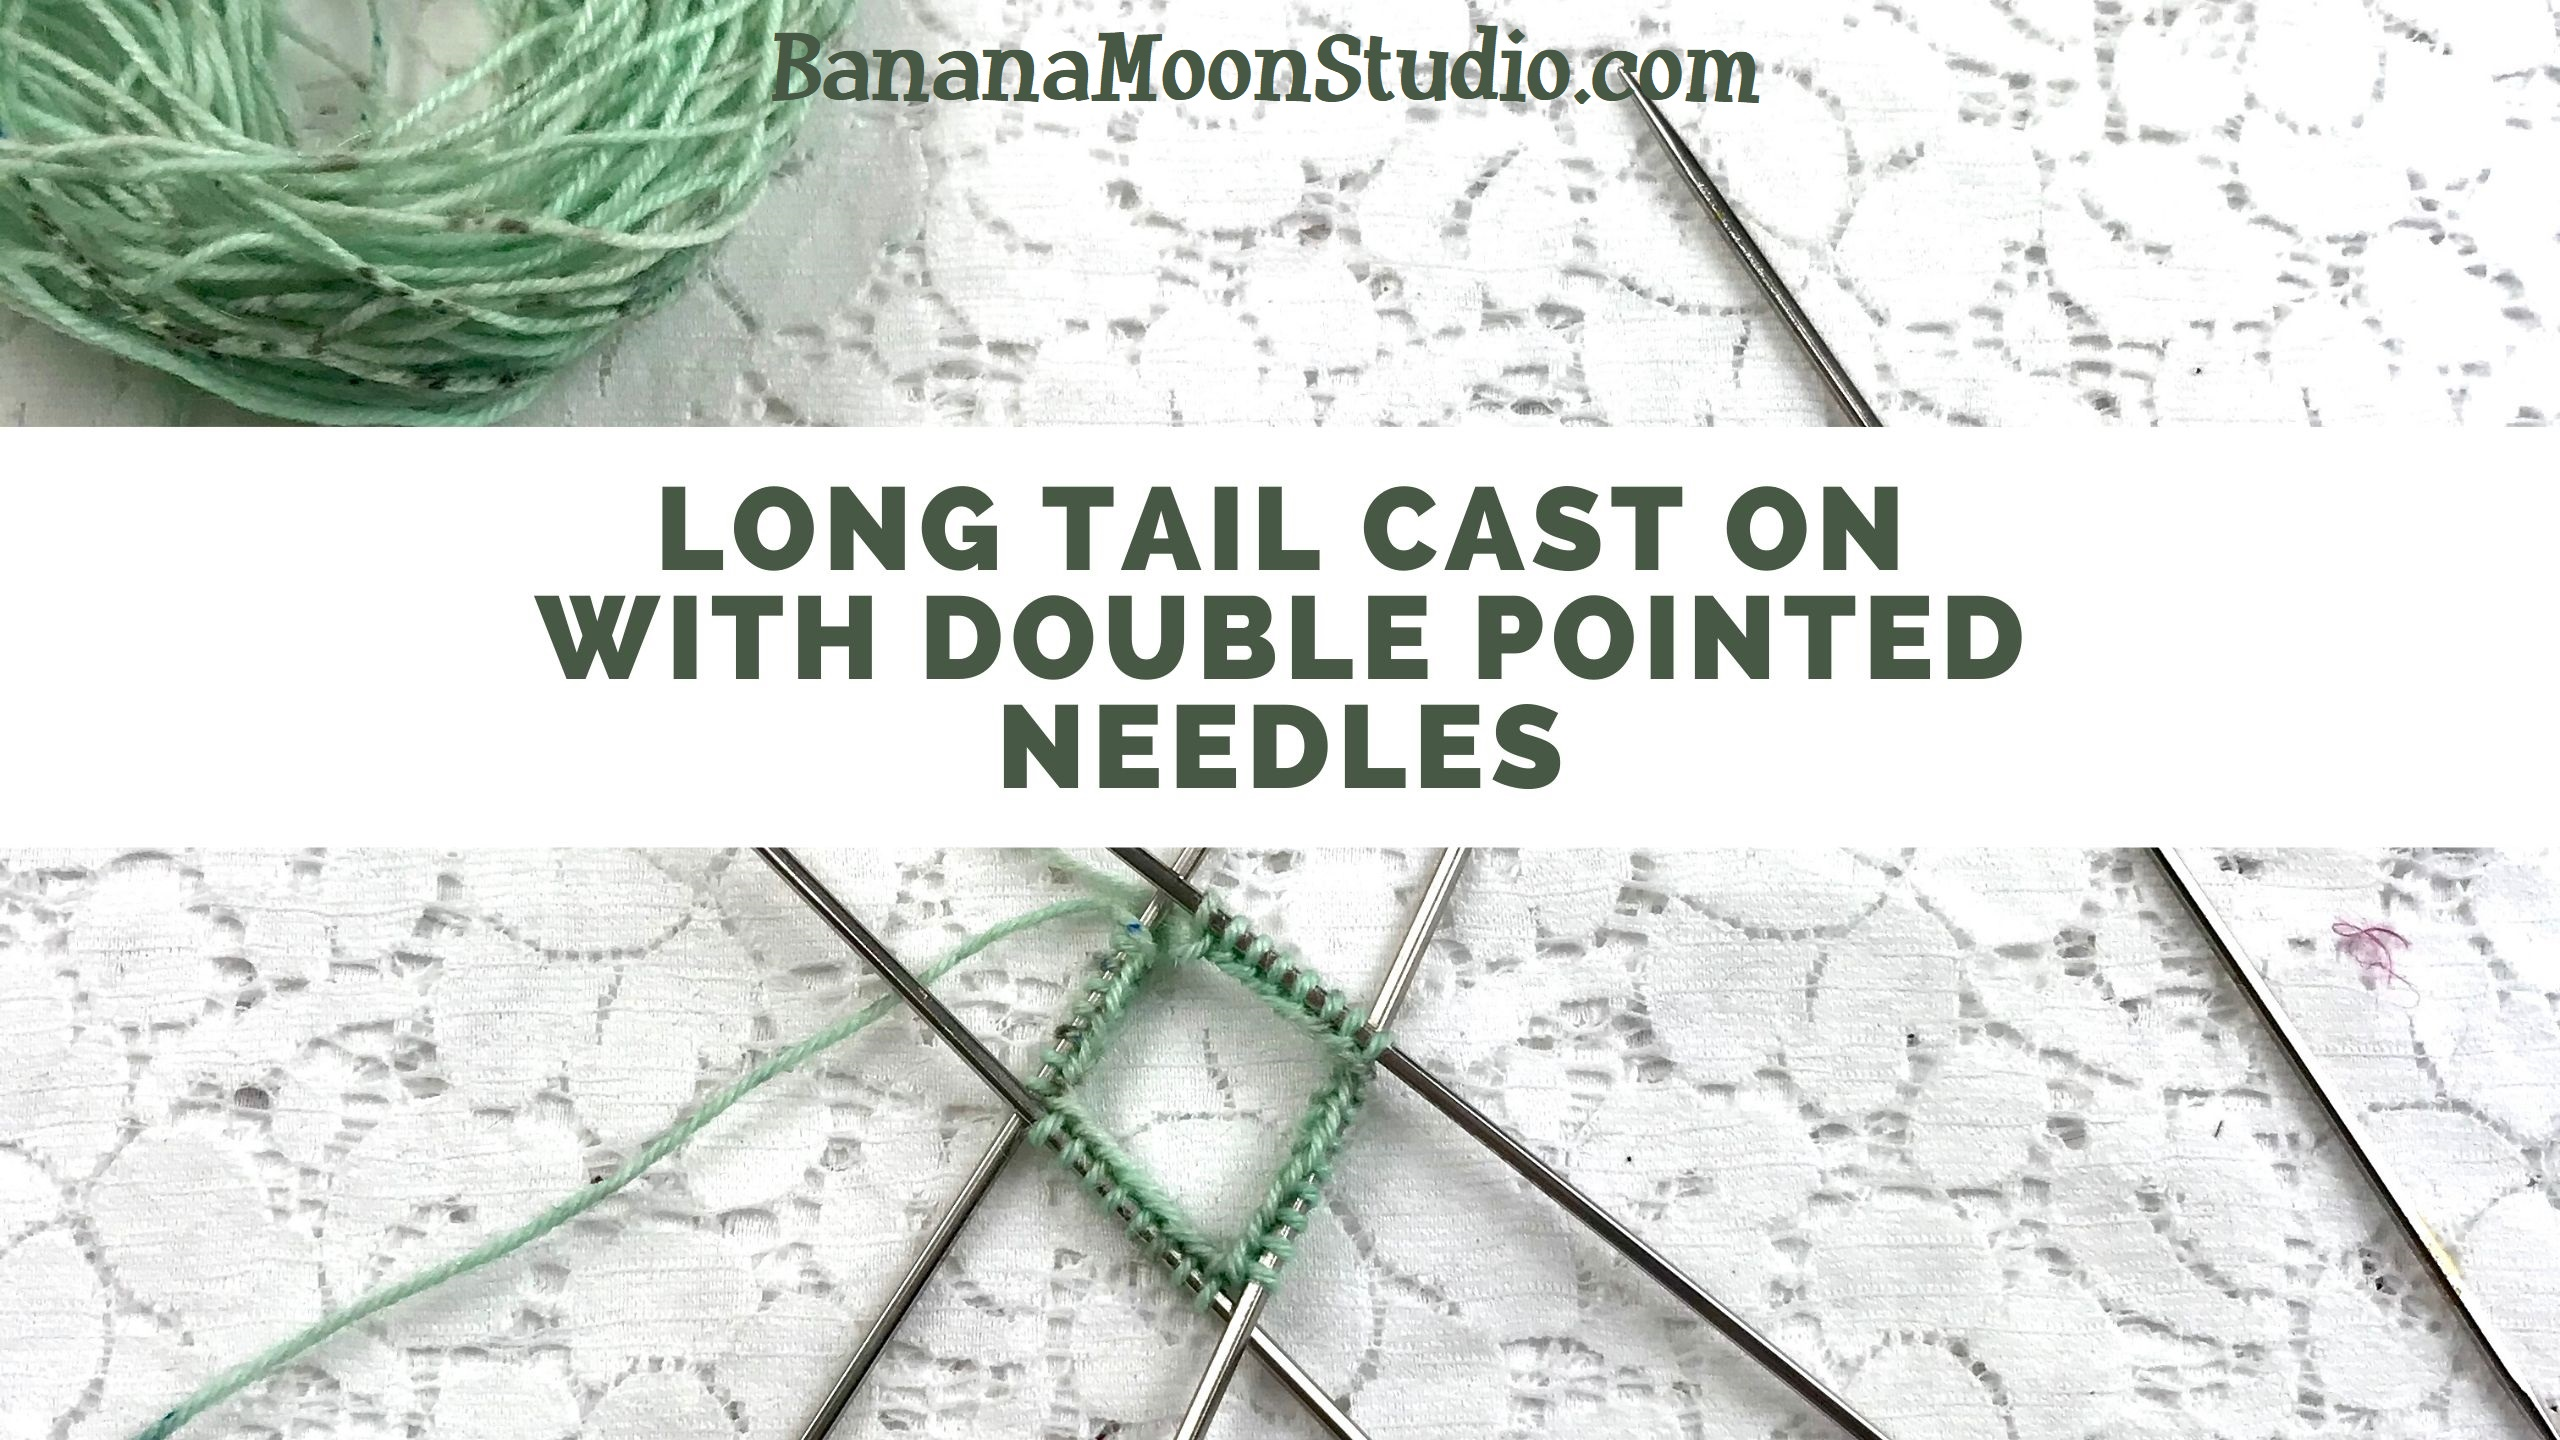 Learn to do a long tail cast on with double pointed knitting needles with this video tutorial from Banana Moon Studio!